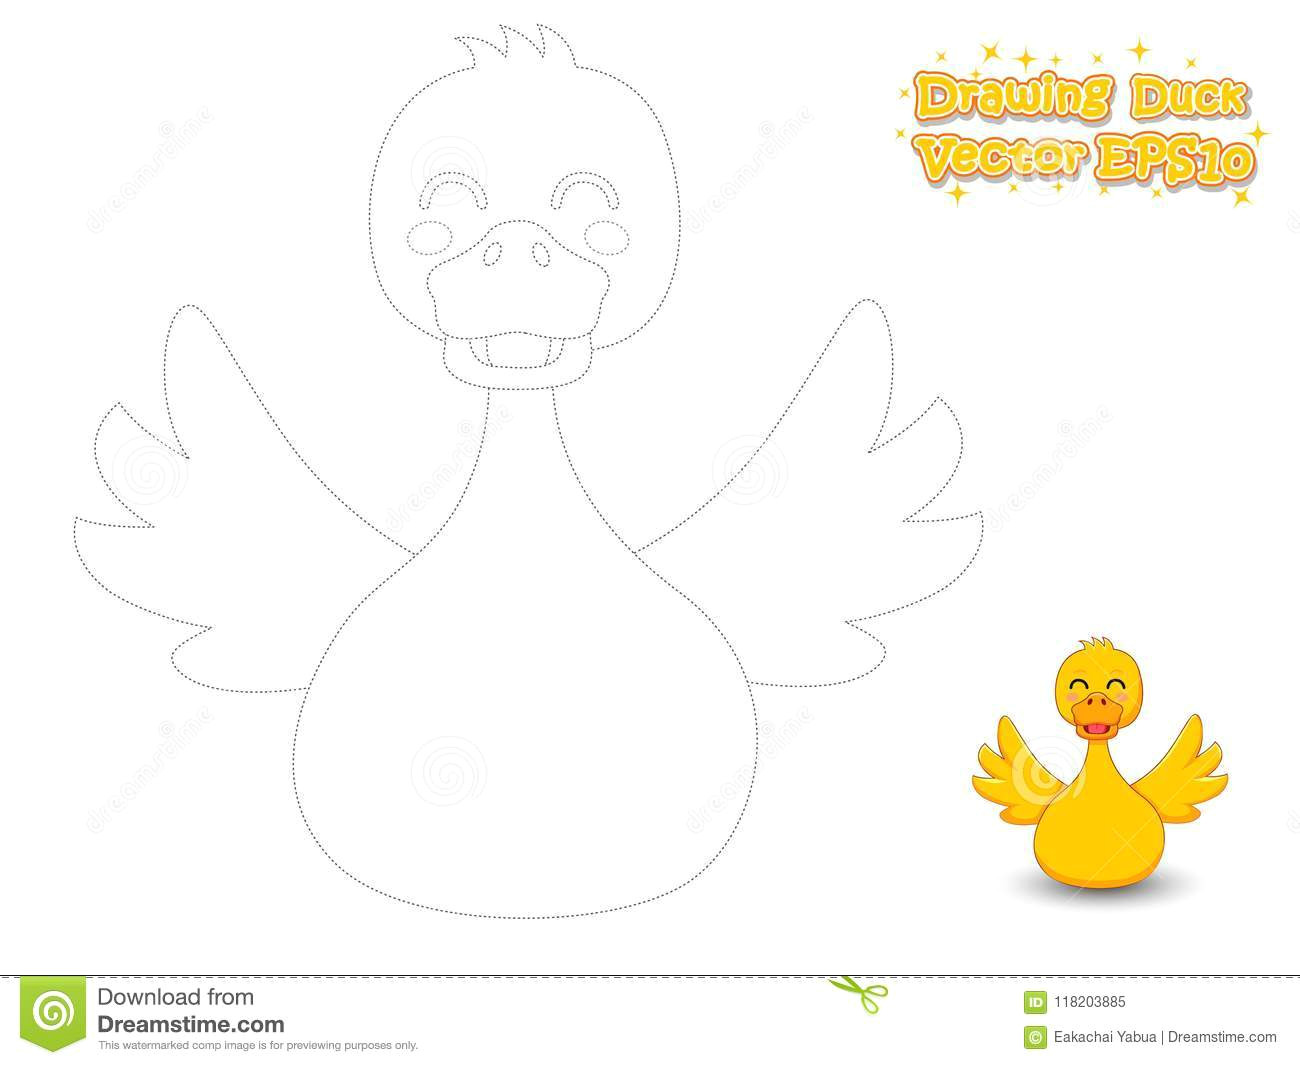 Drawing Of Cute Duck Drawing and Coloring Cute Cartoon Duck Educational Game for Kid